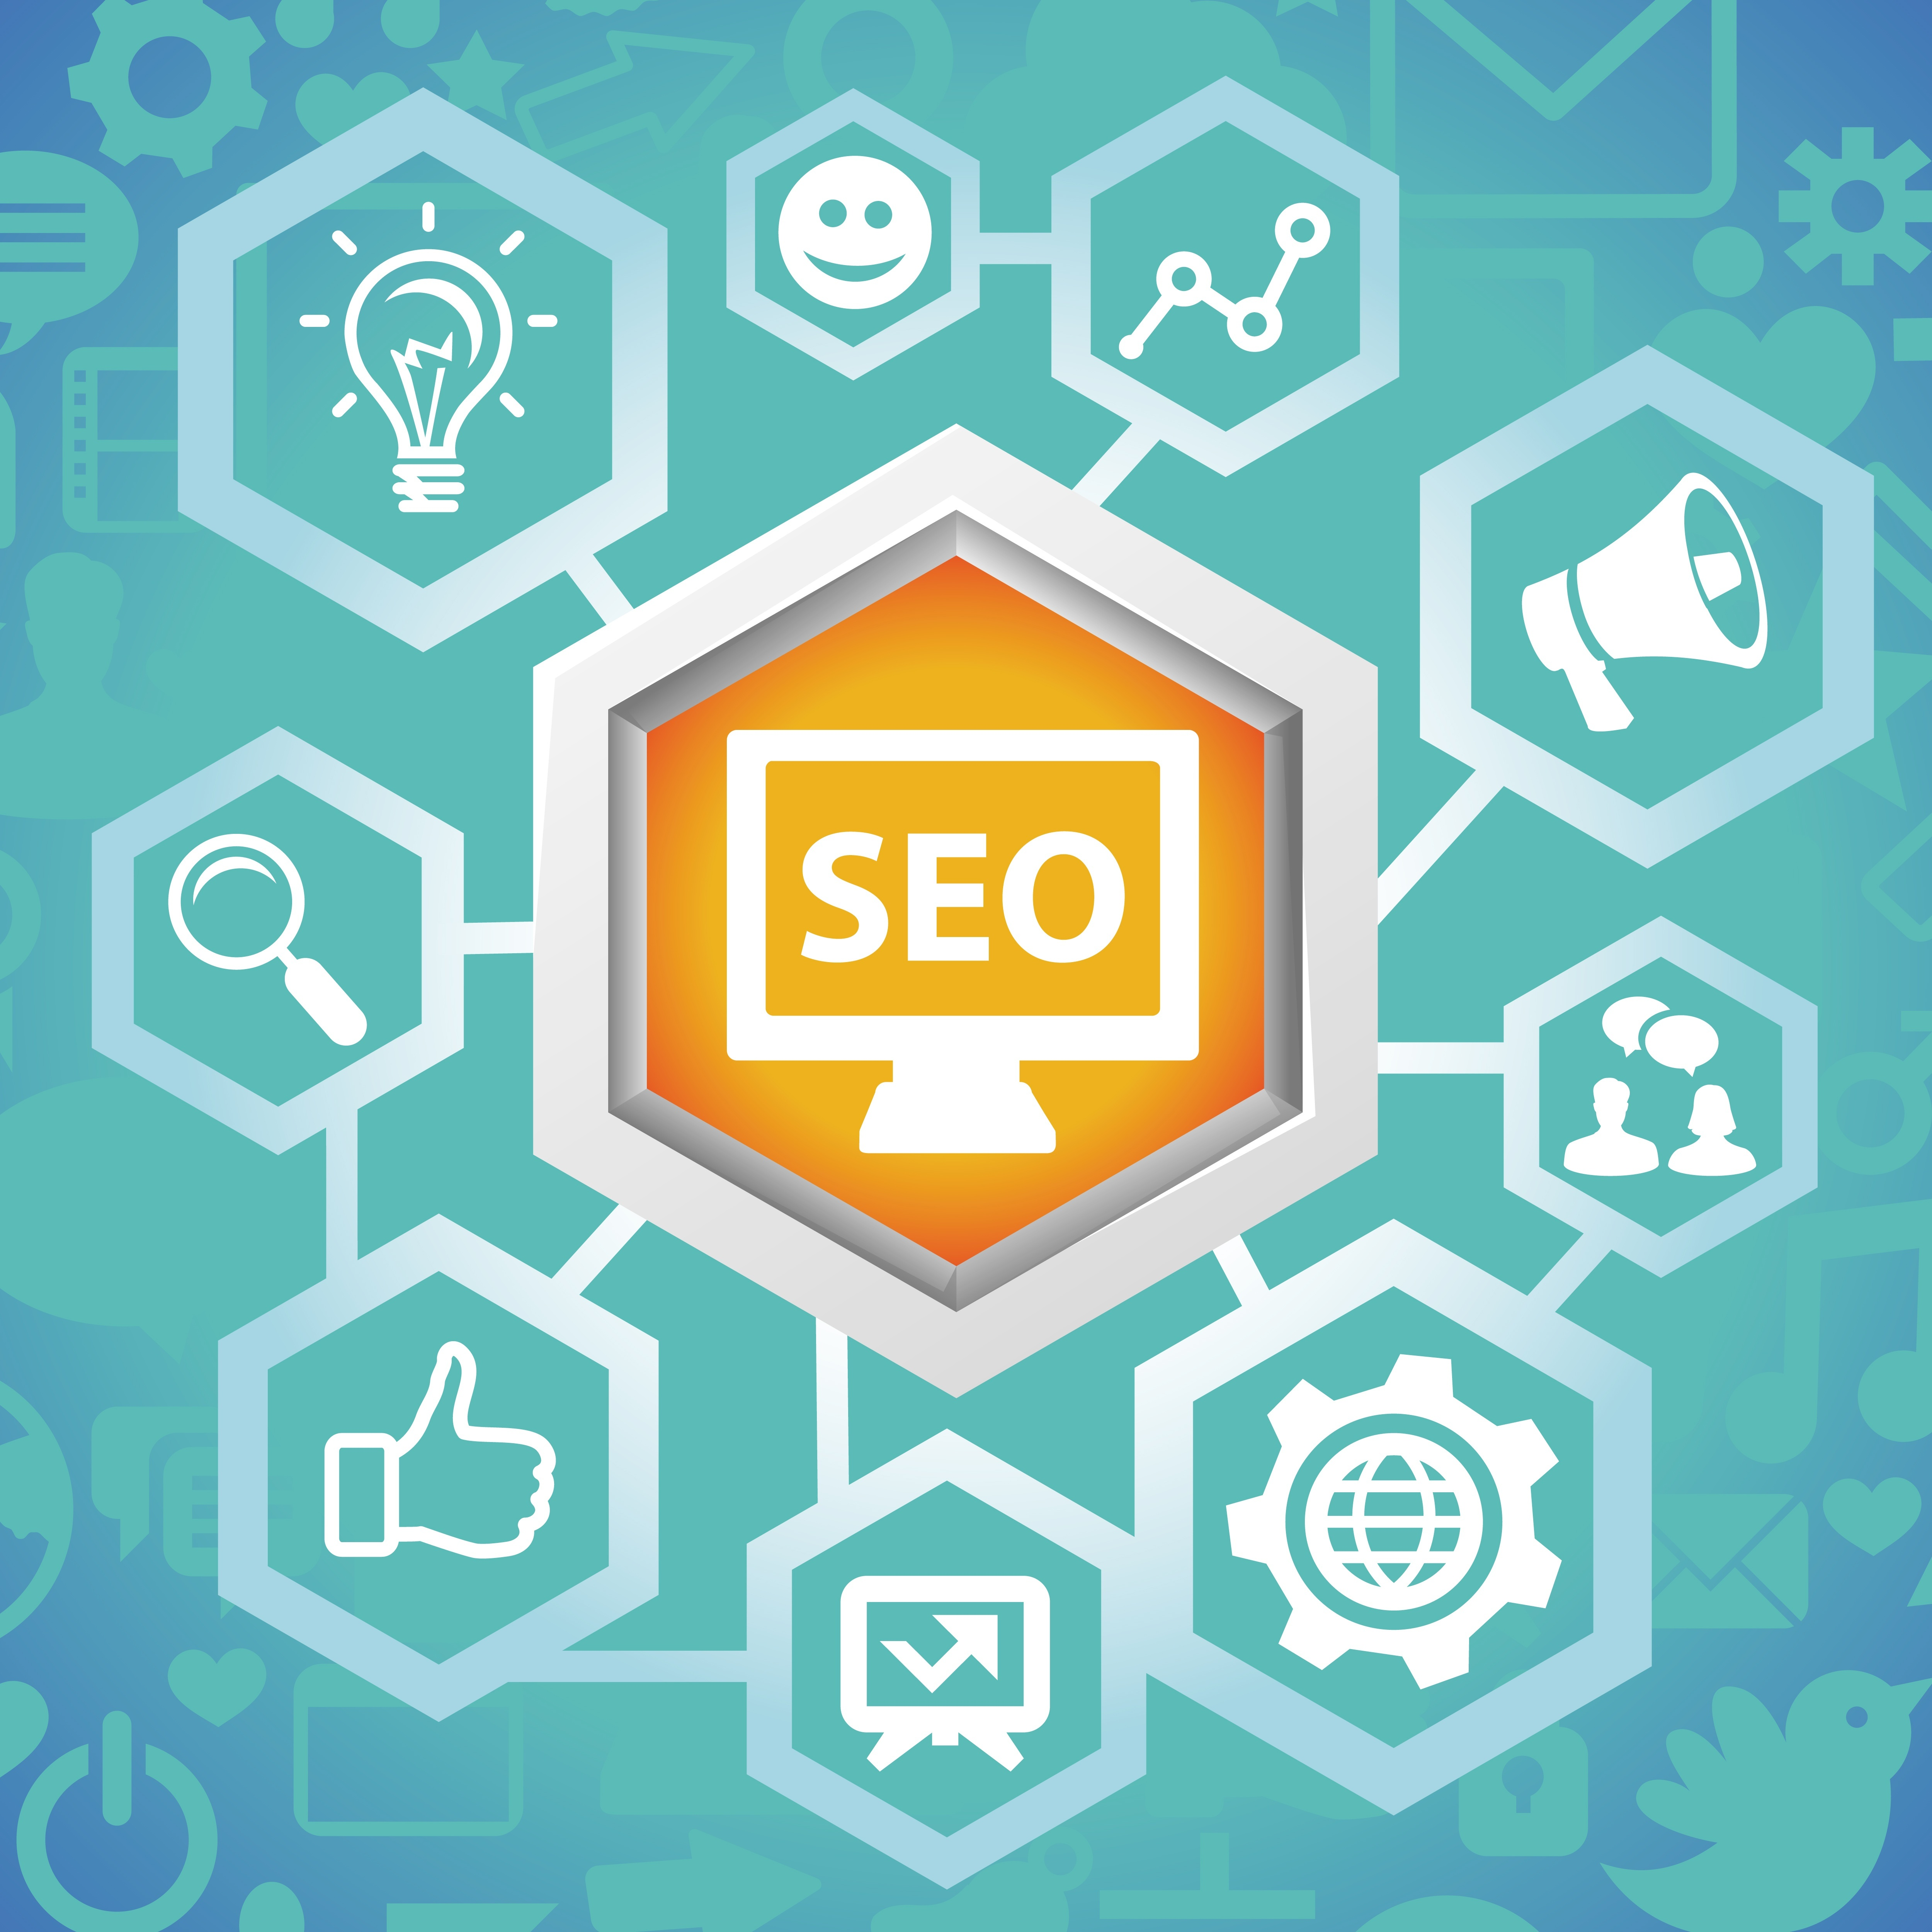 How to Change Name on Google Search Reults with Social Media SEO